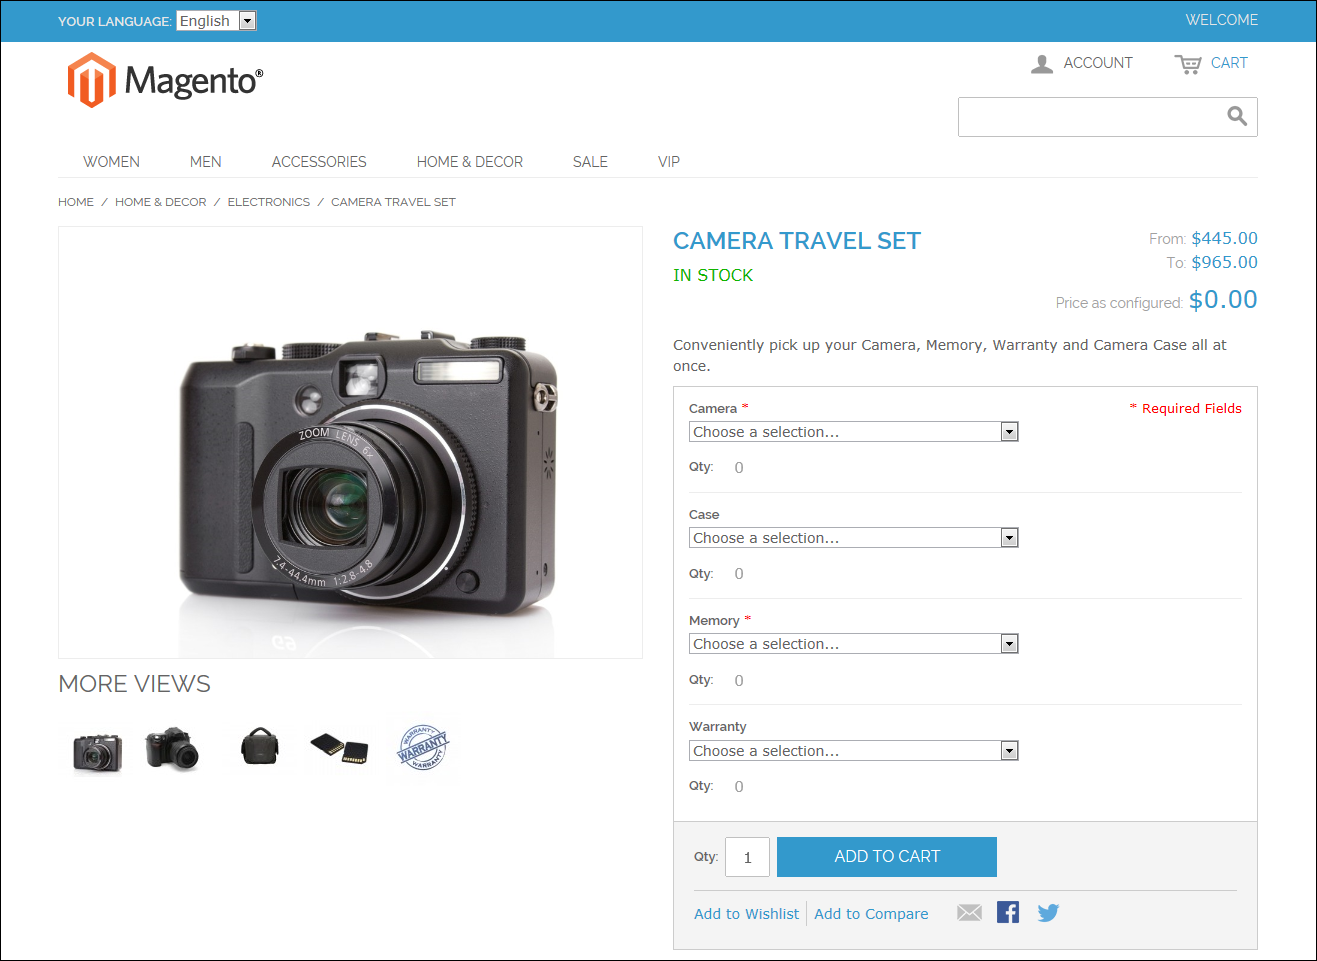 Magento product page view